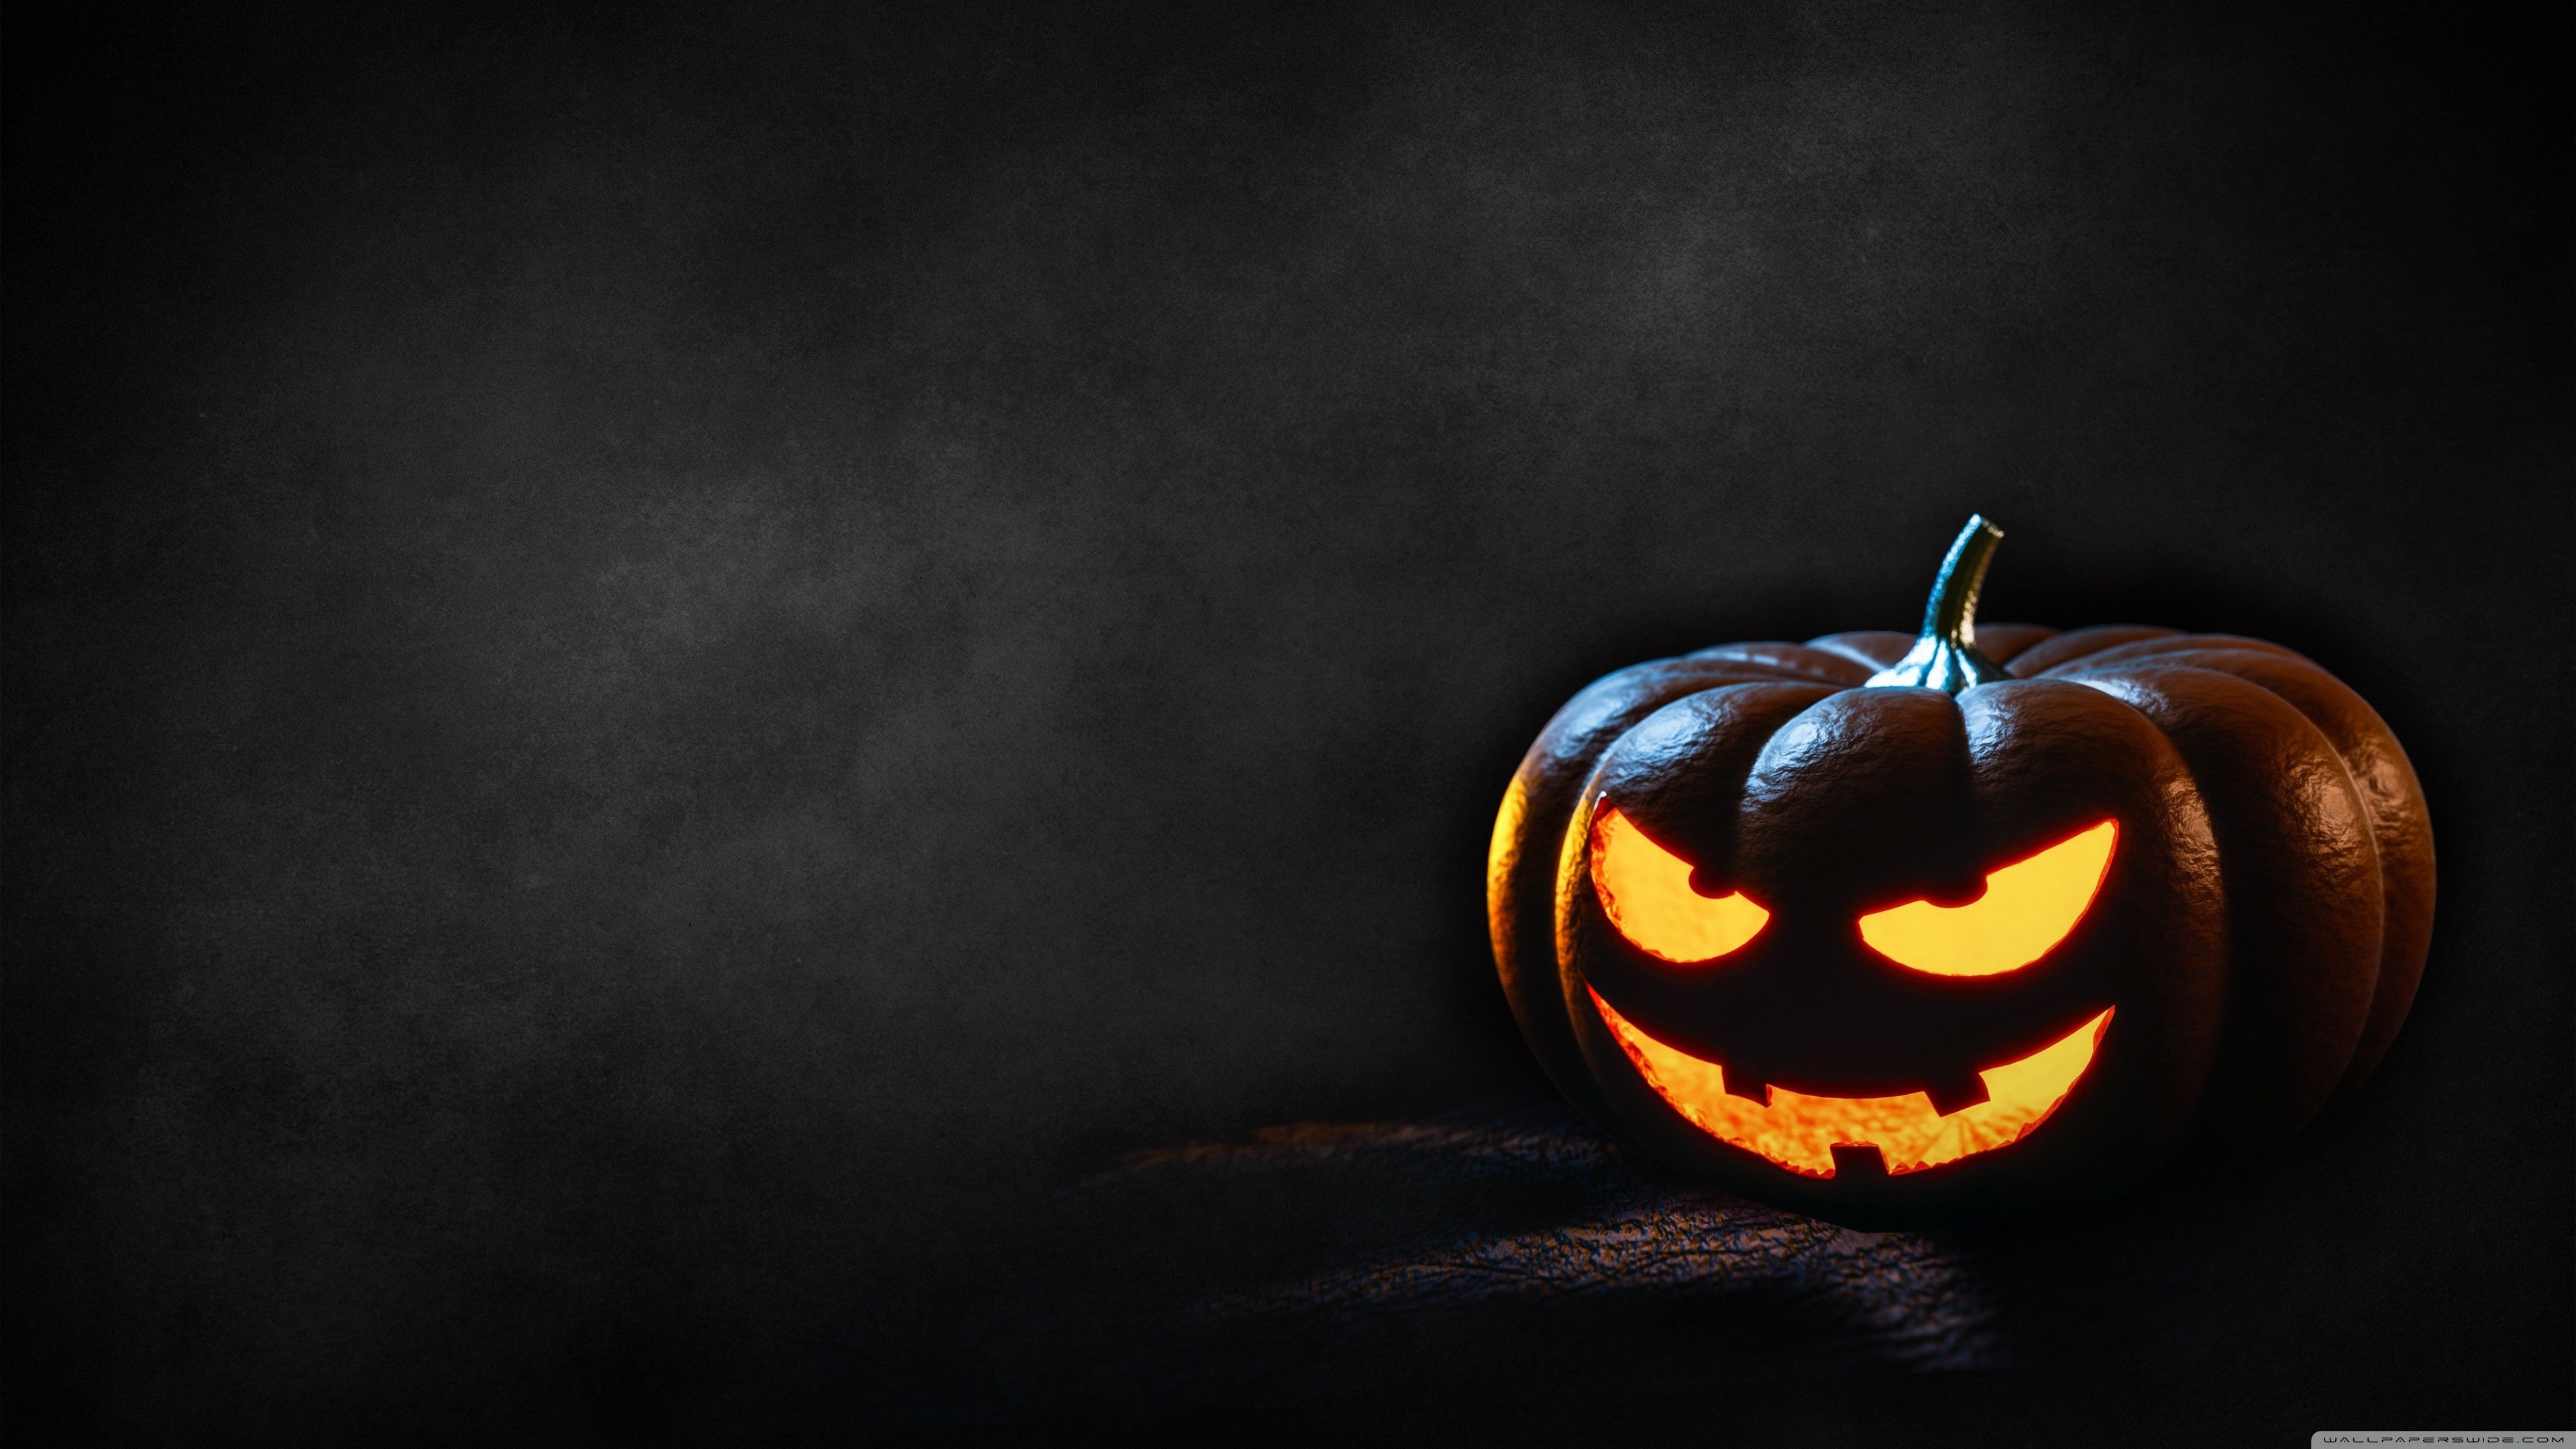 Halloween Desktop Wallpapers   Top Halloween Desktop 3840x2160